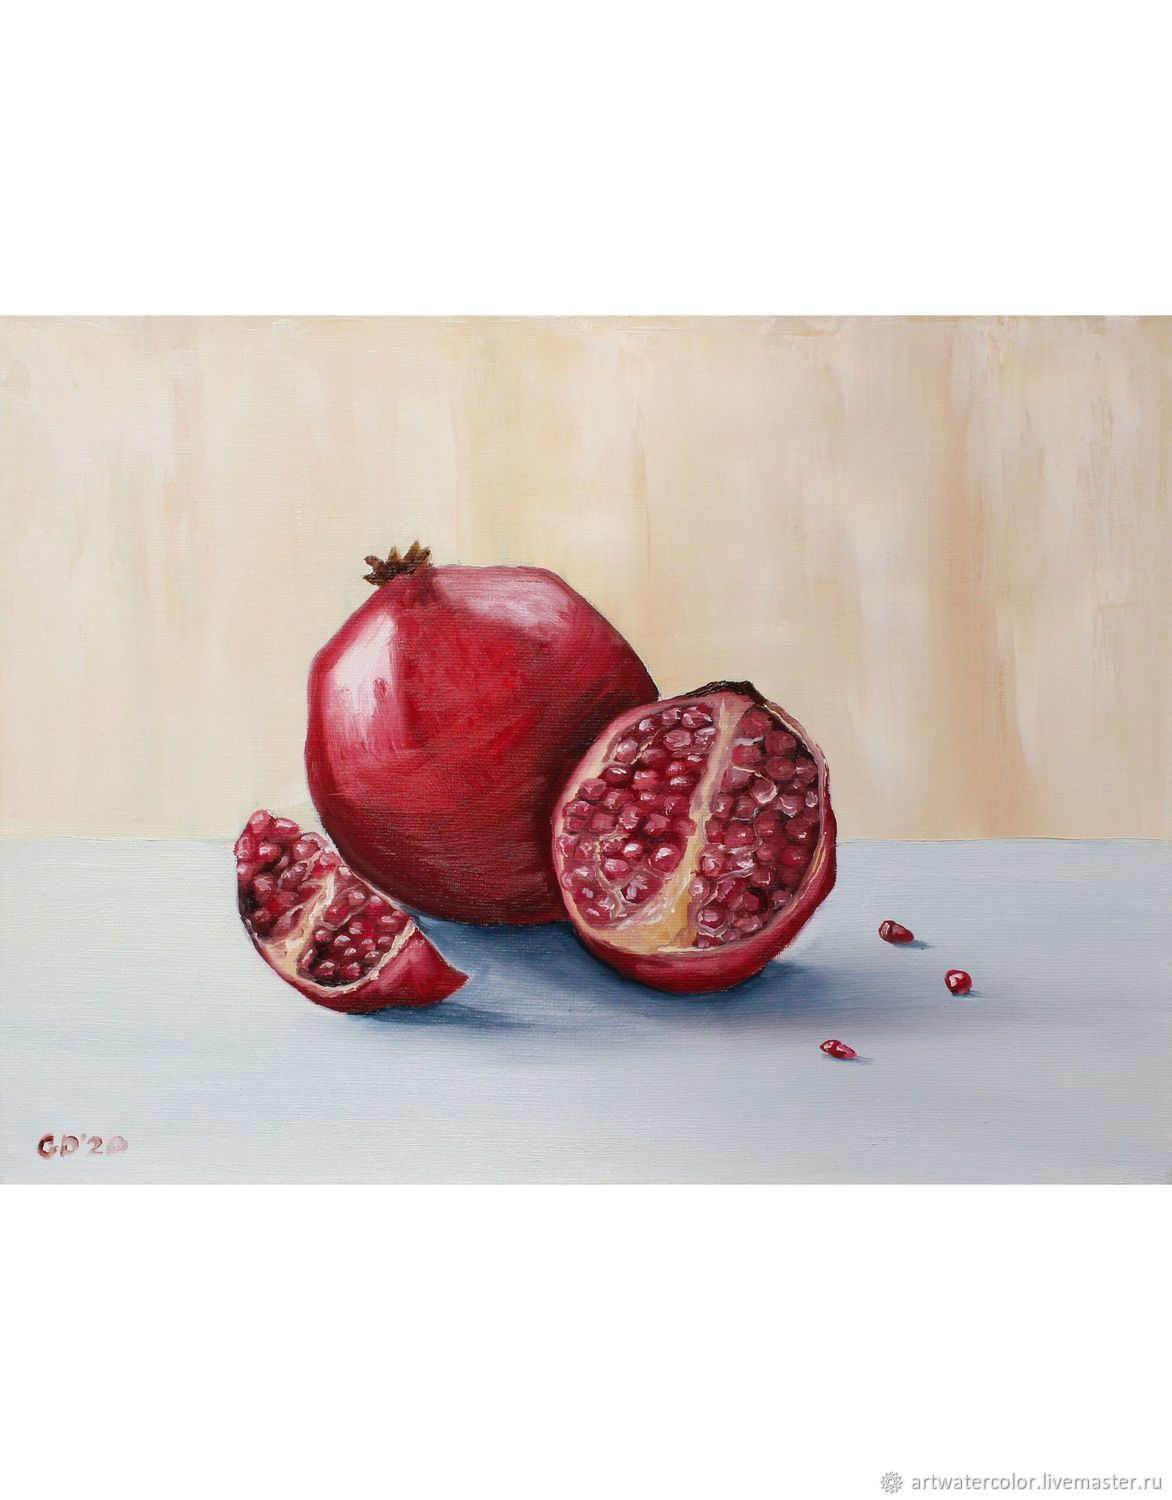 Oil painting Pomegranate Still life with fruit, Pictures, Moscow,  Фото №1